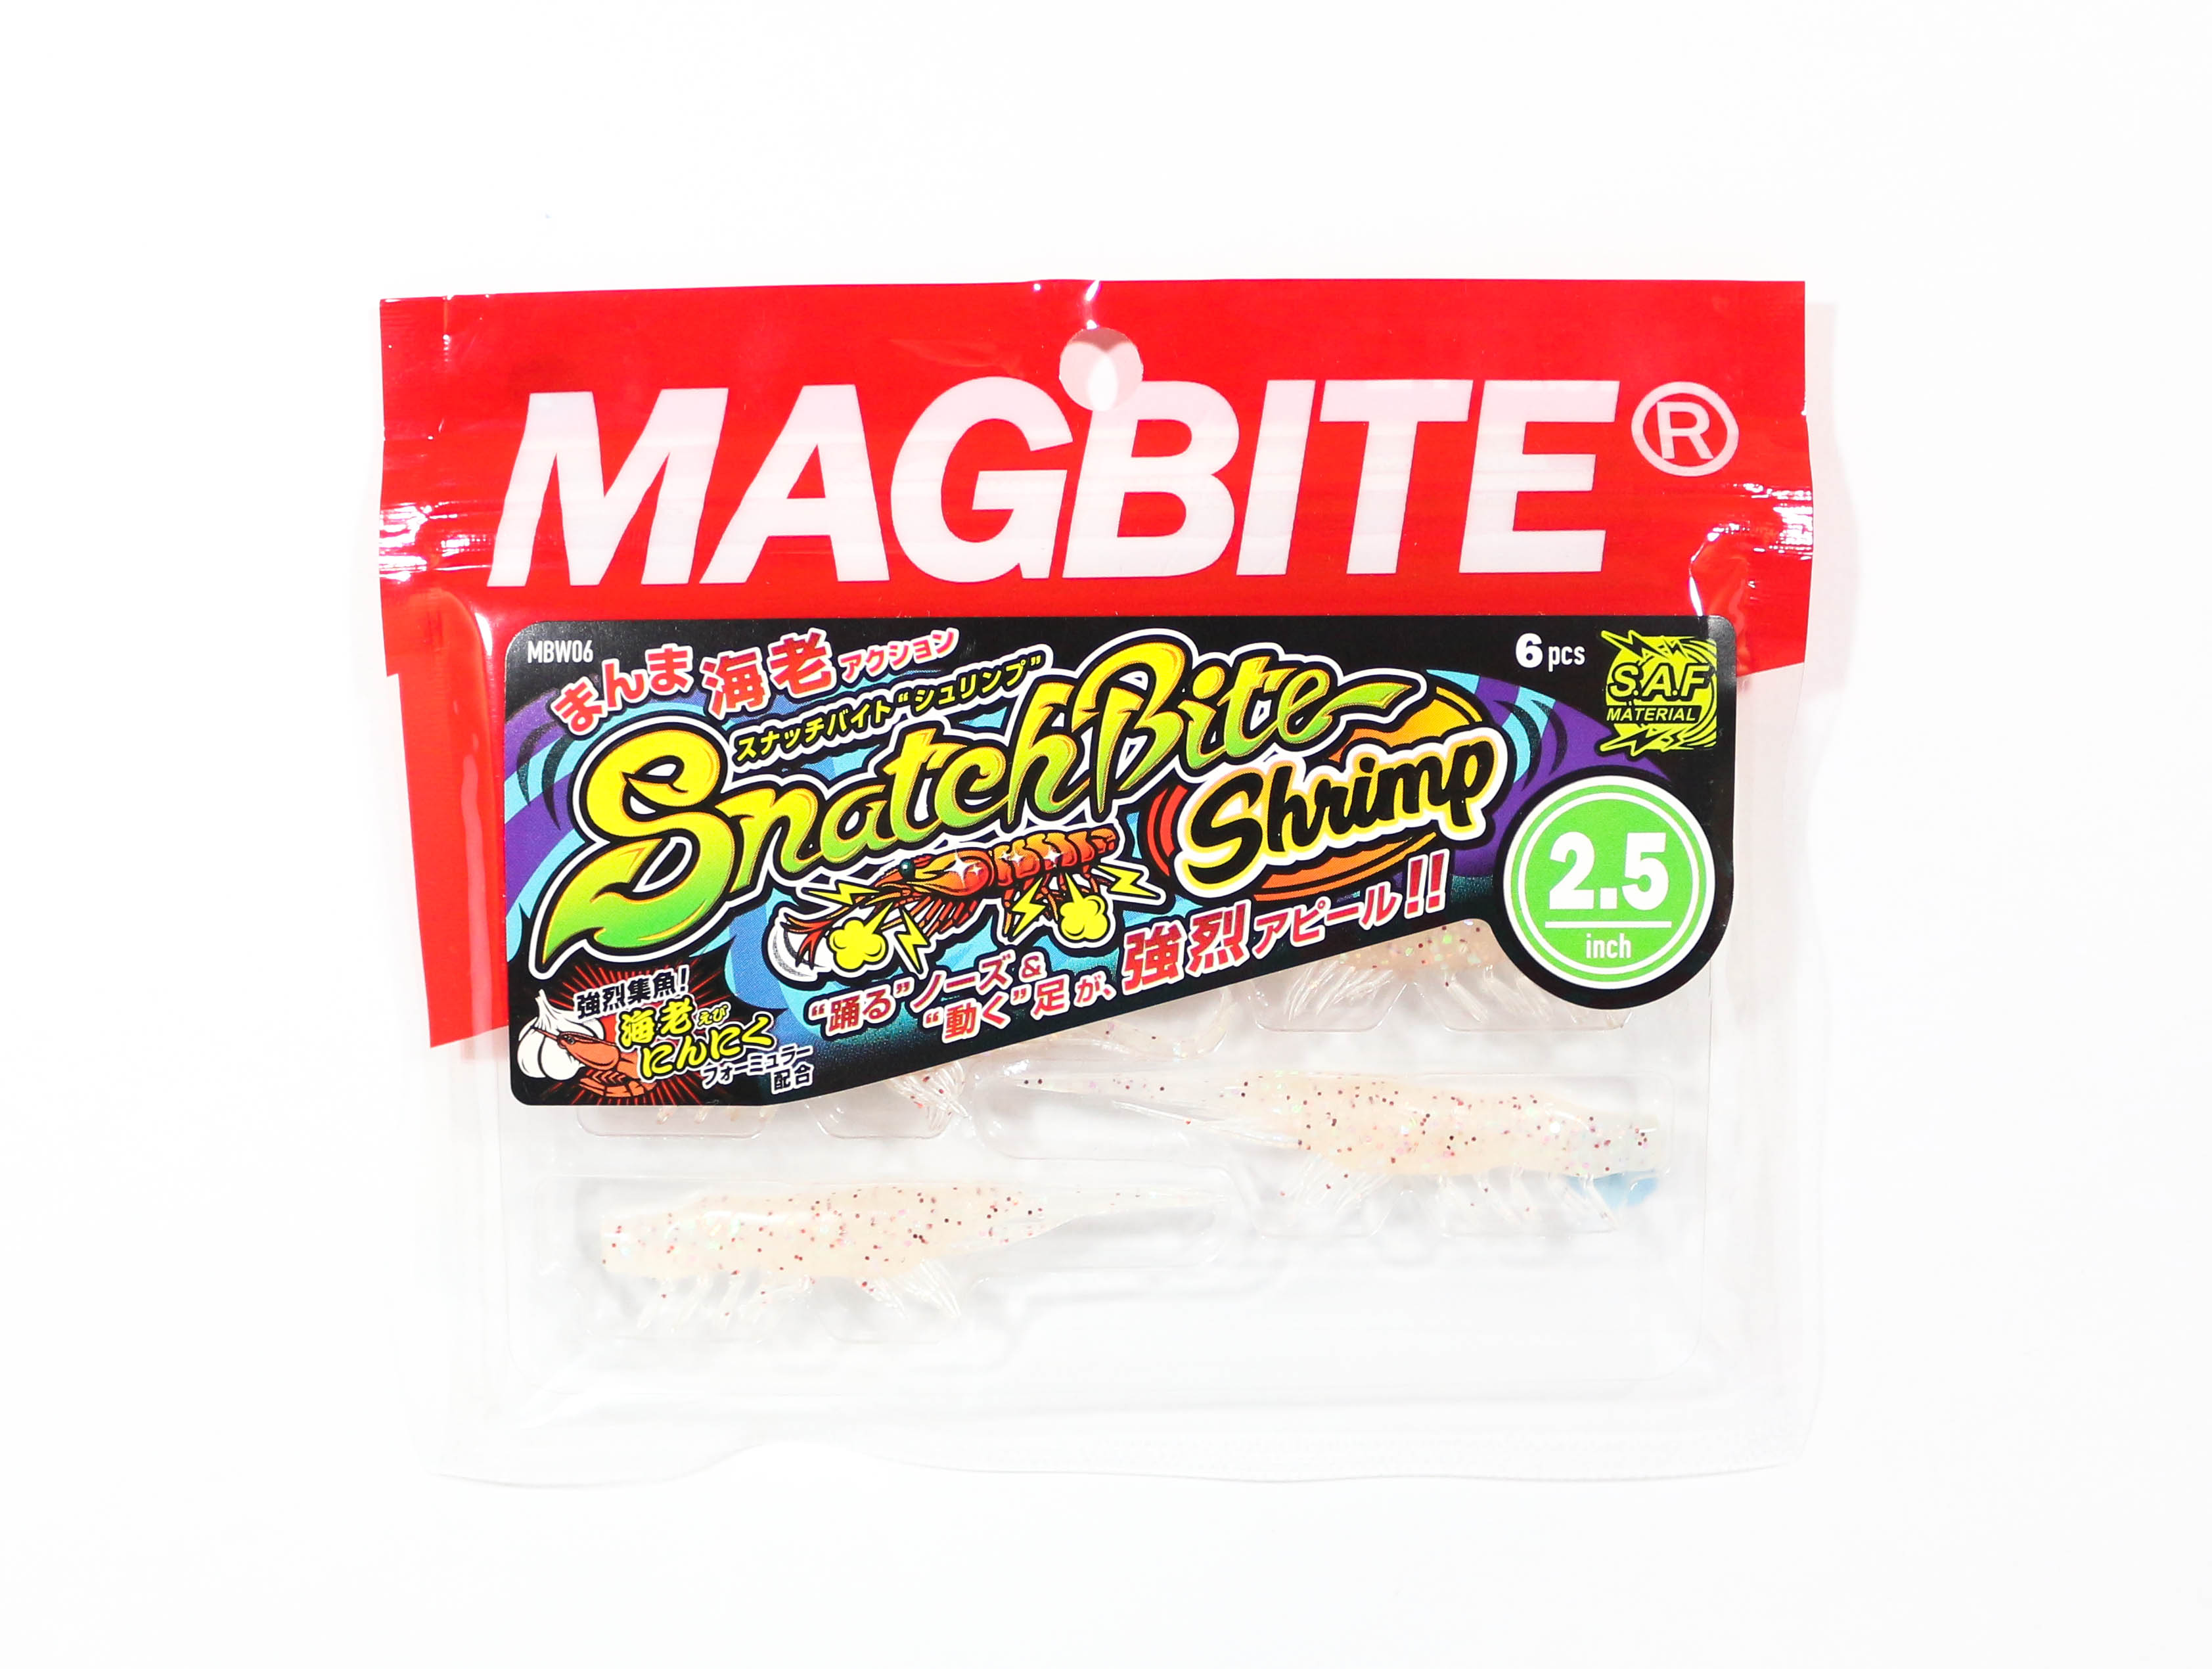 Harimitsu Mag Bite Snatch Shrimp 2.5 Inch 6 per pack 05 (6539)